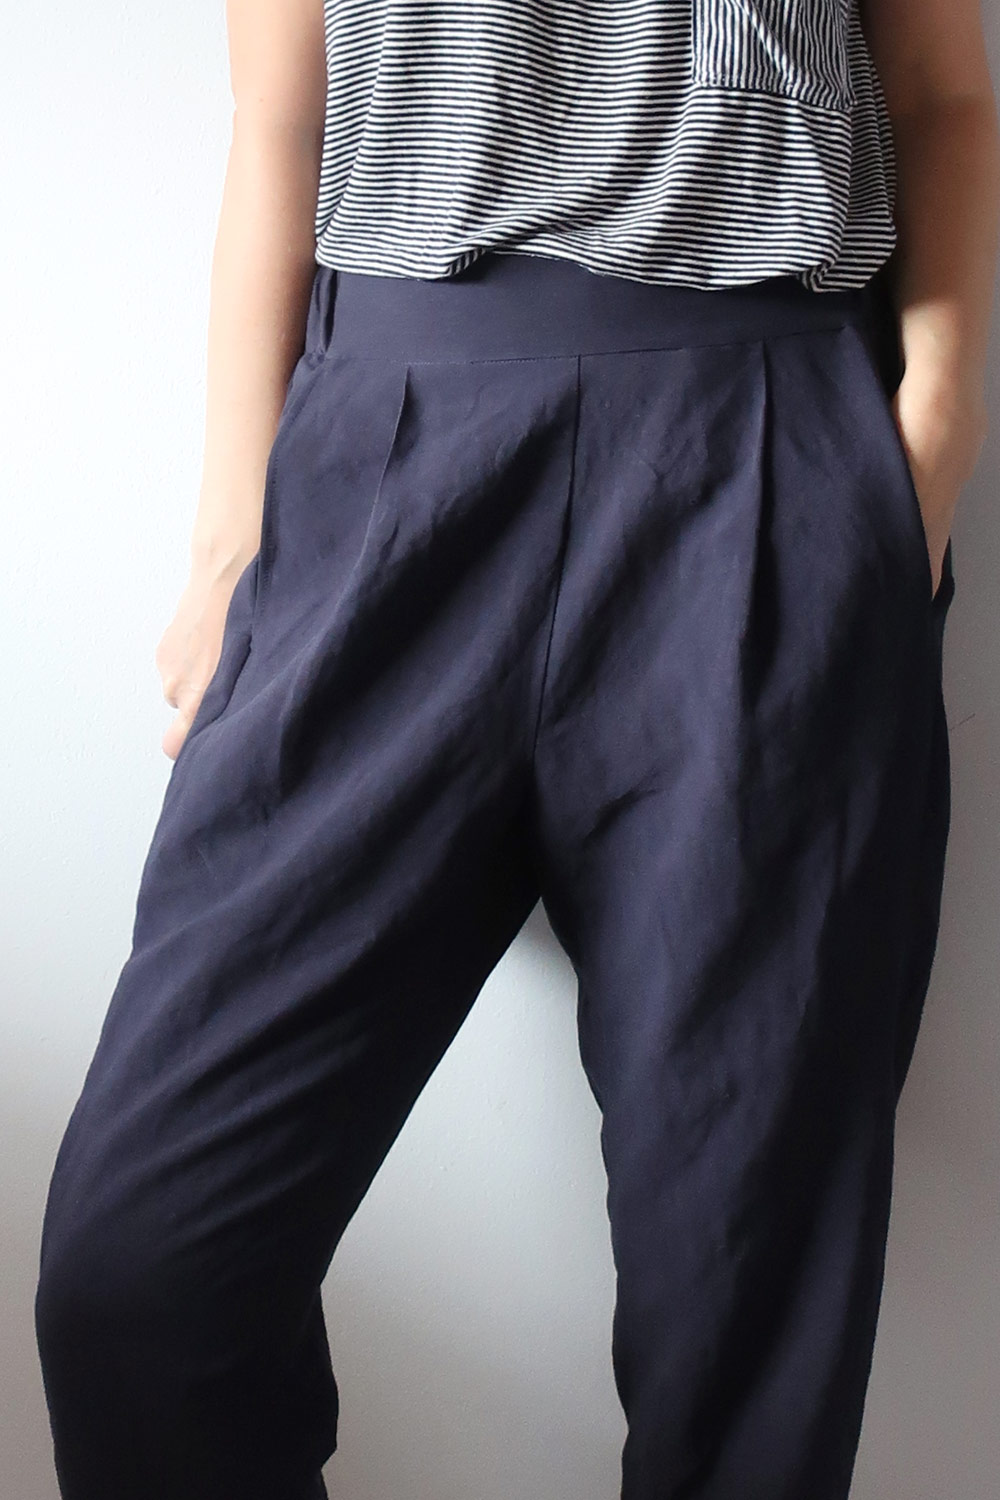 DIY Pleated Pants – Review of the Calyer Pants pattern by French Navy   Sew DIY